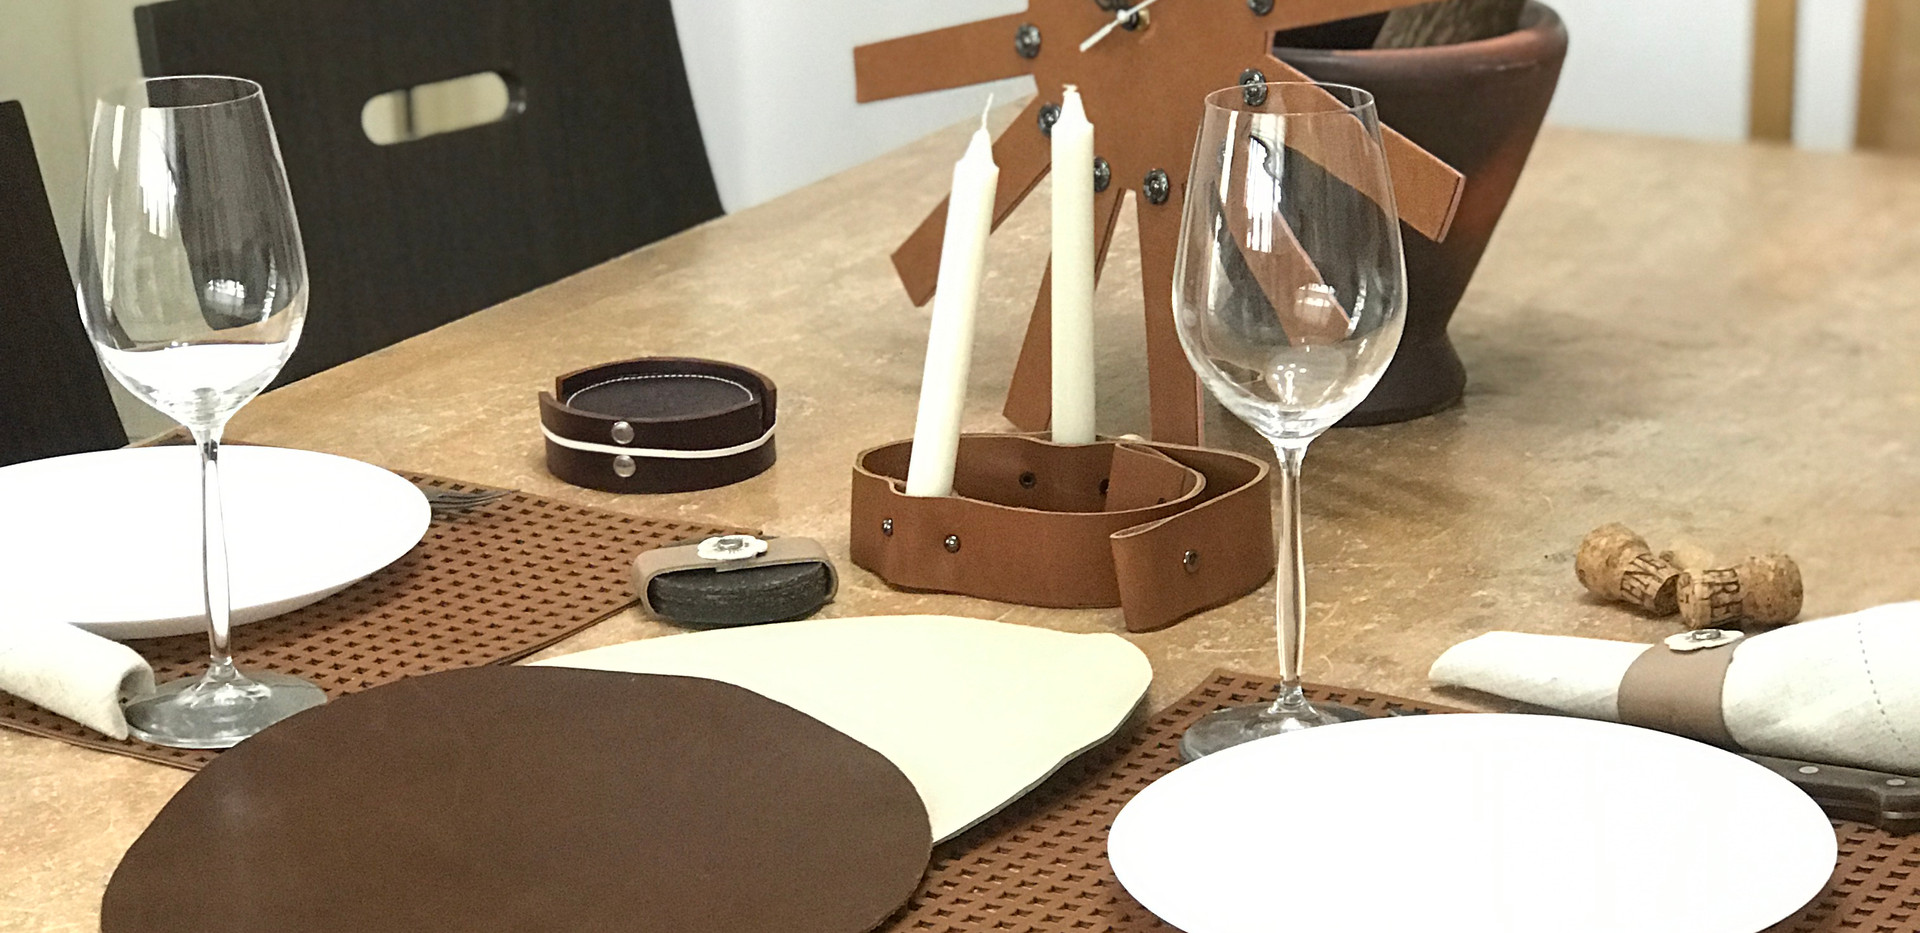 Table set in scrap leather